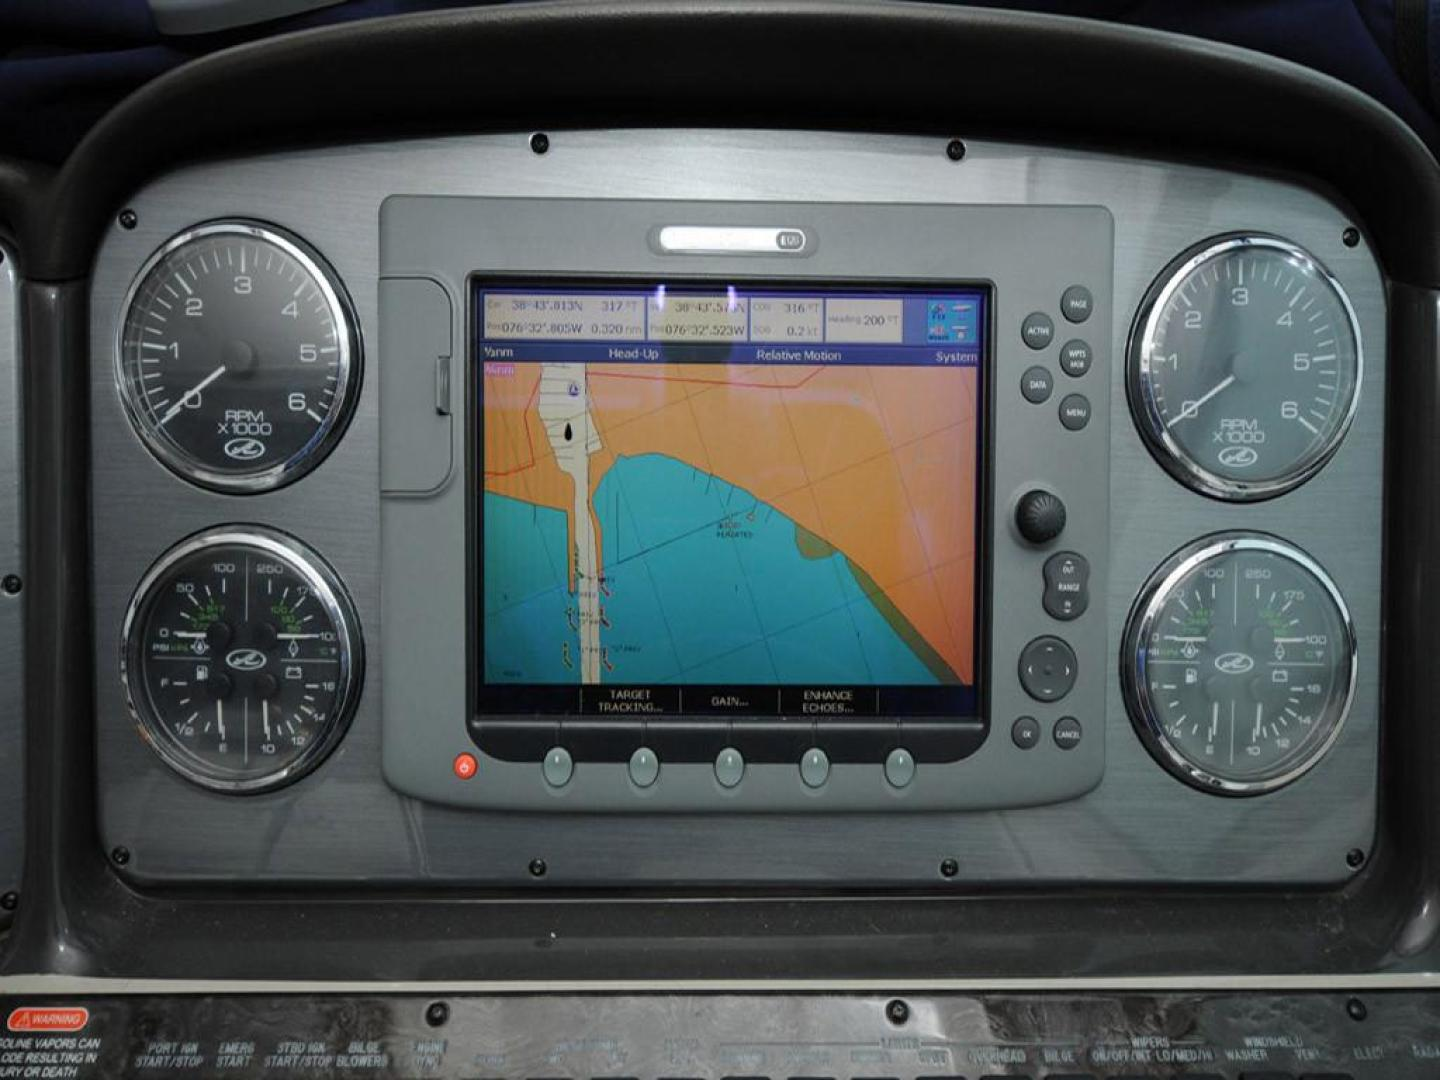 Sea-Ray-38-Sundancer-2007-El-Don-North-Beach-Maryland-United-States-Helm-Instruments-and-Chartplotter-923282